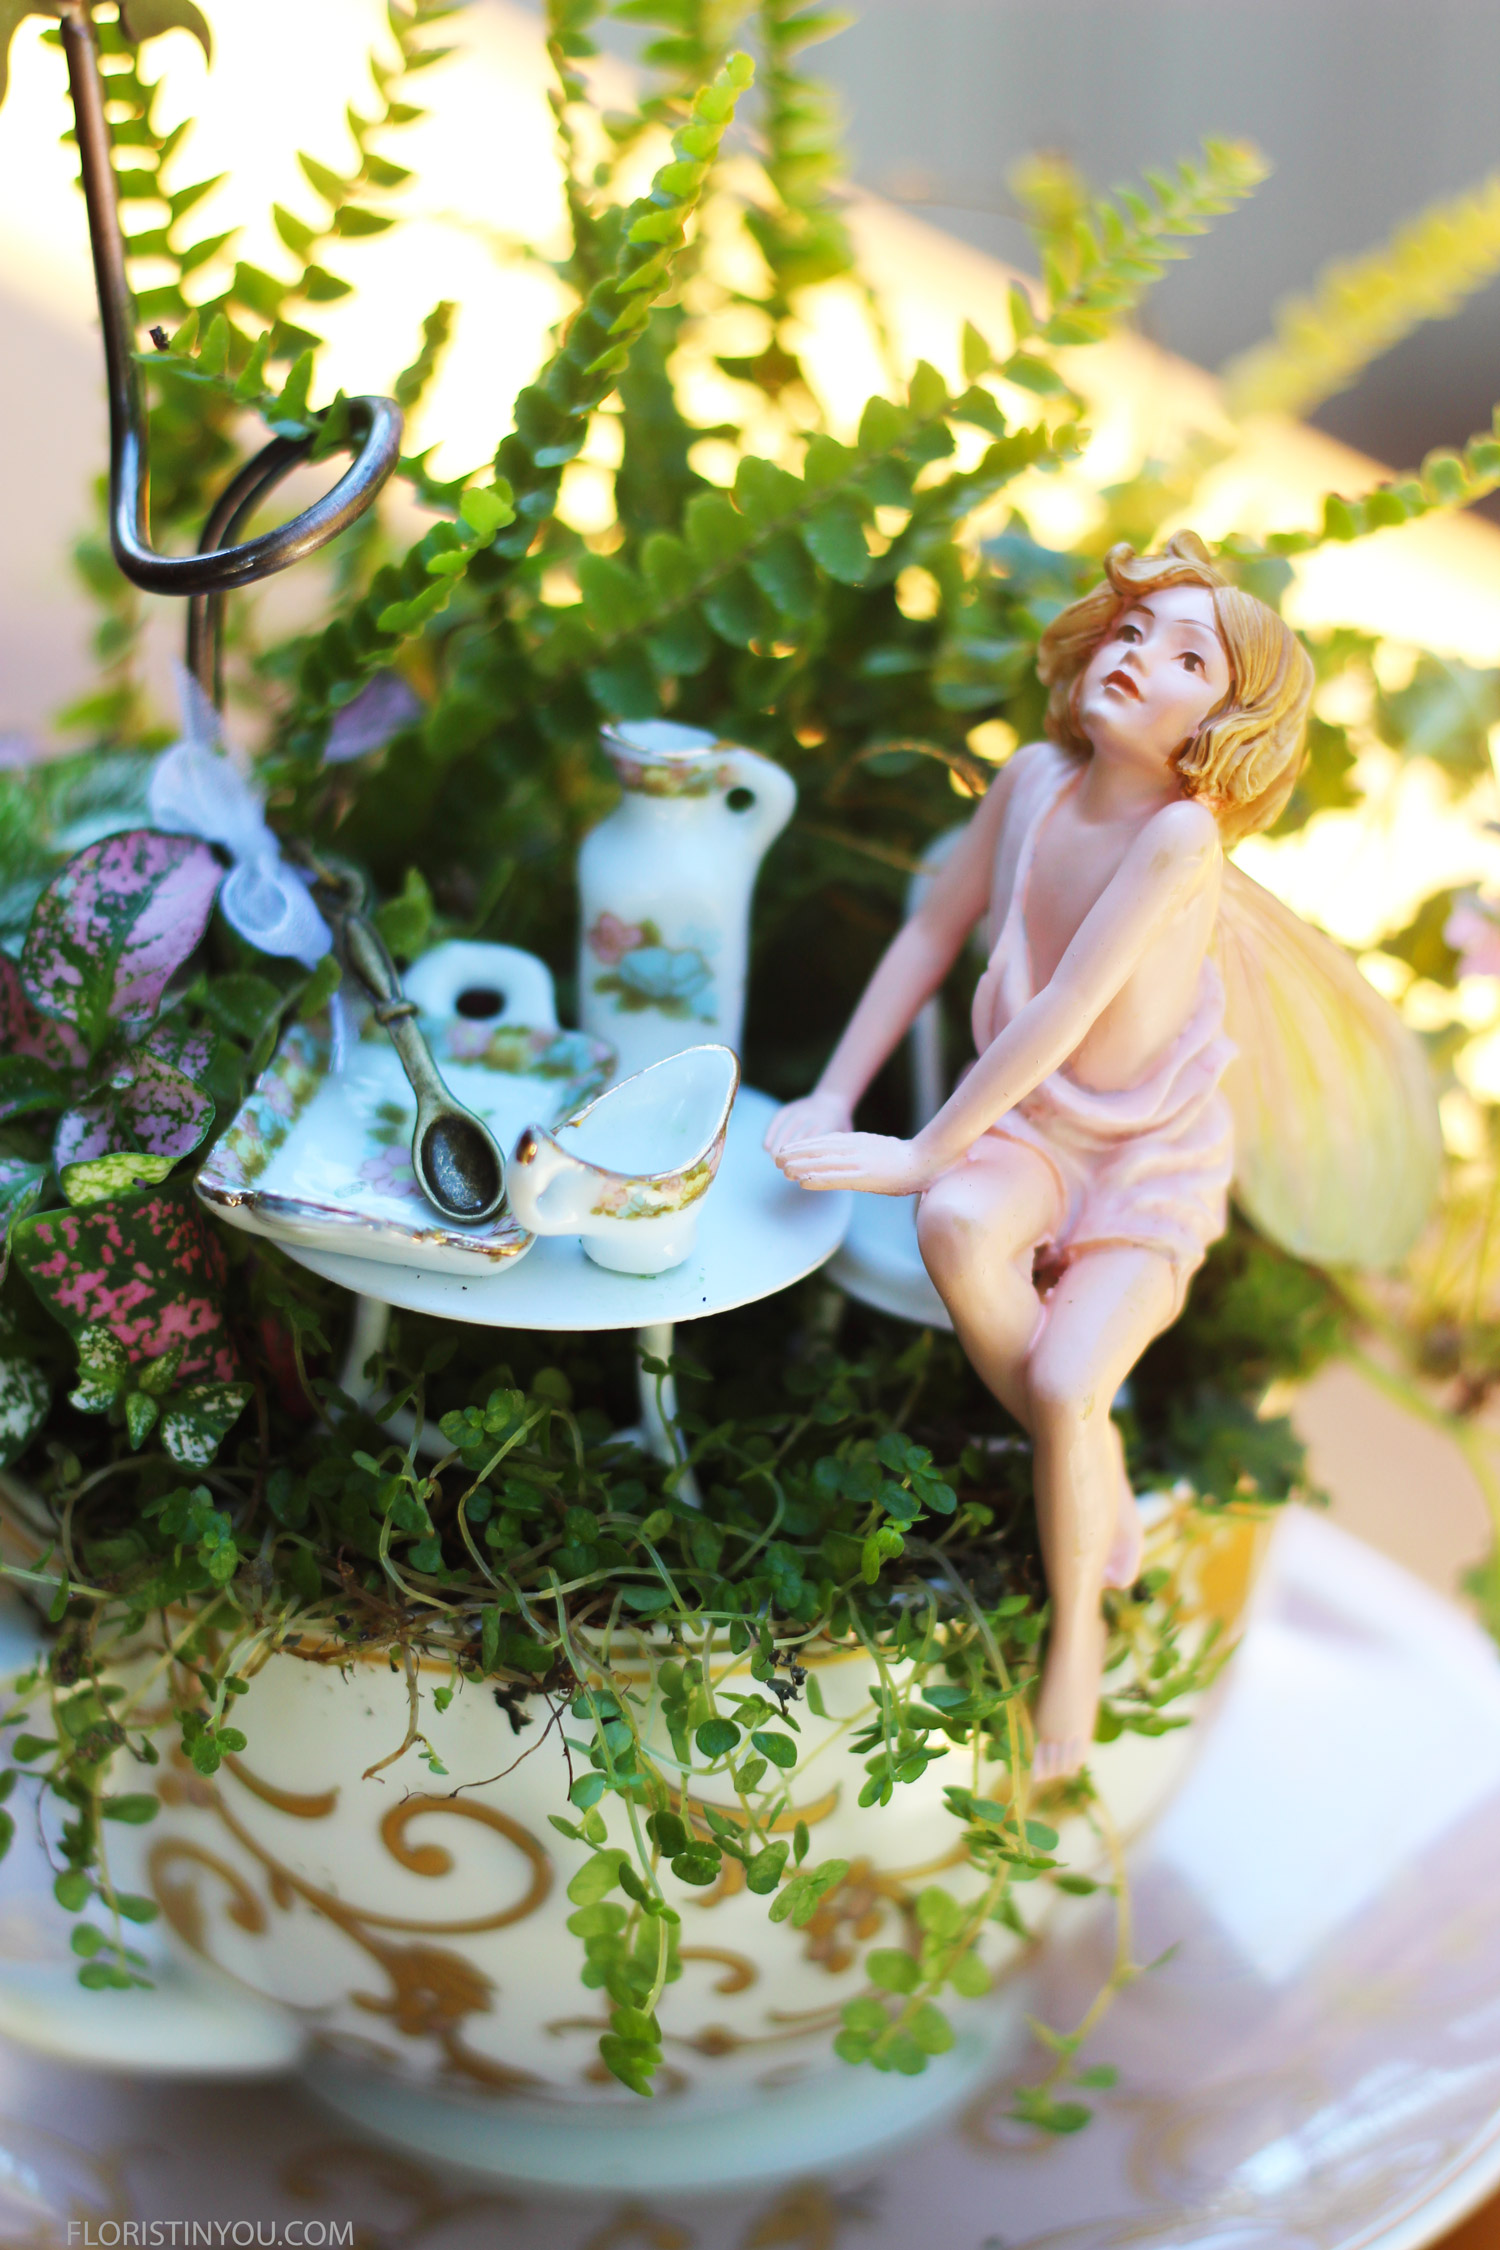 The light draws our attention to the delicate features of the Jasmine Fairy whom it seams is seated at a tea party in a fern graced wood. Enjoy this tiny fairy and her garden.